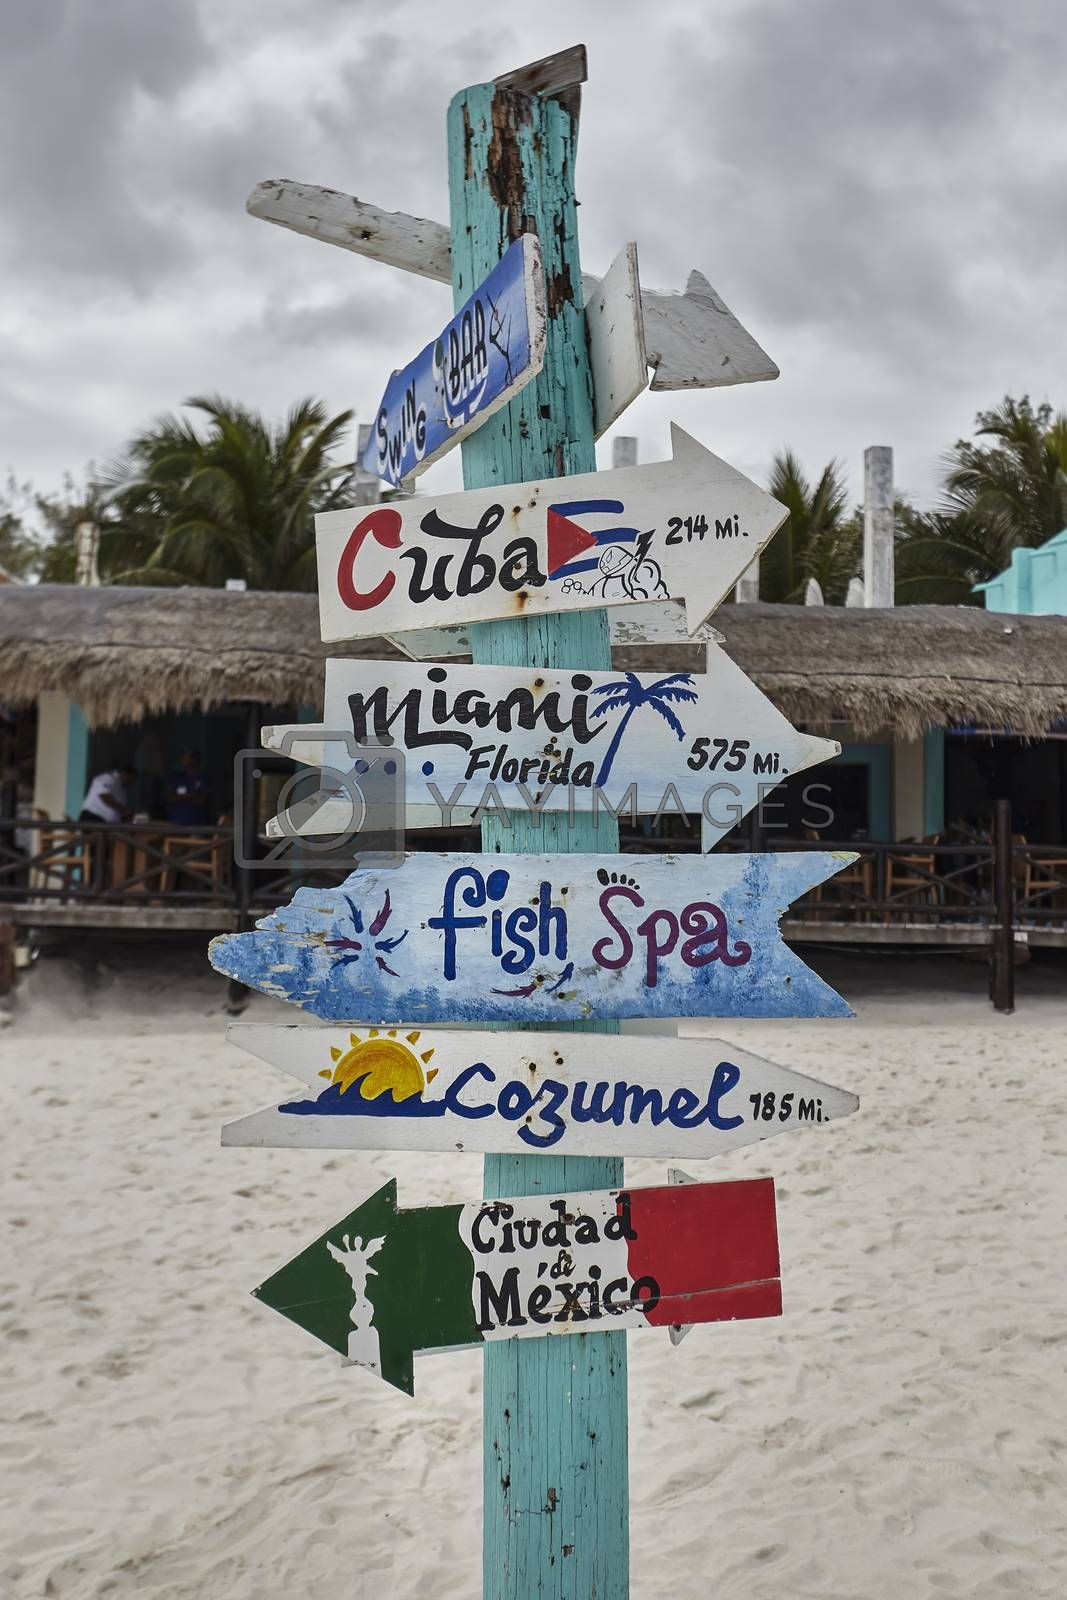 Sign with wooden arrows and blue, containing indications for cuba, florida, cozumel, ciuda de mexico and fish spa